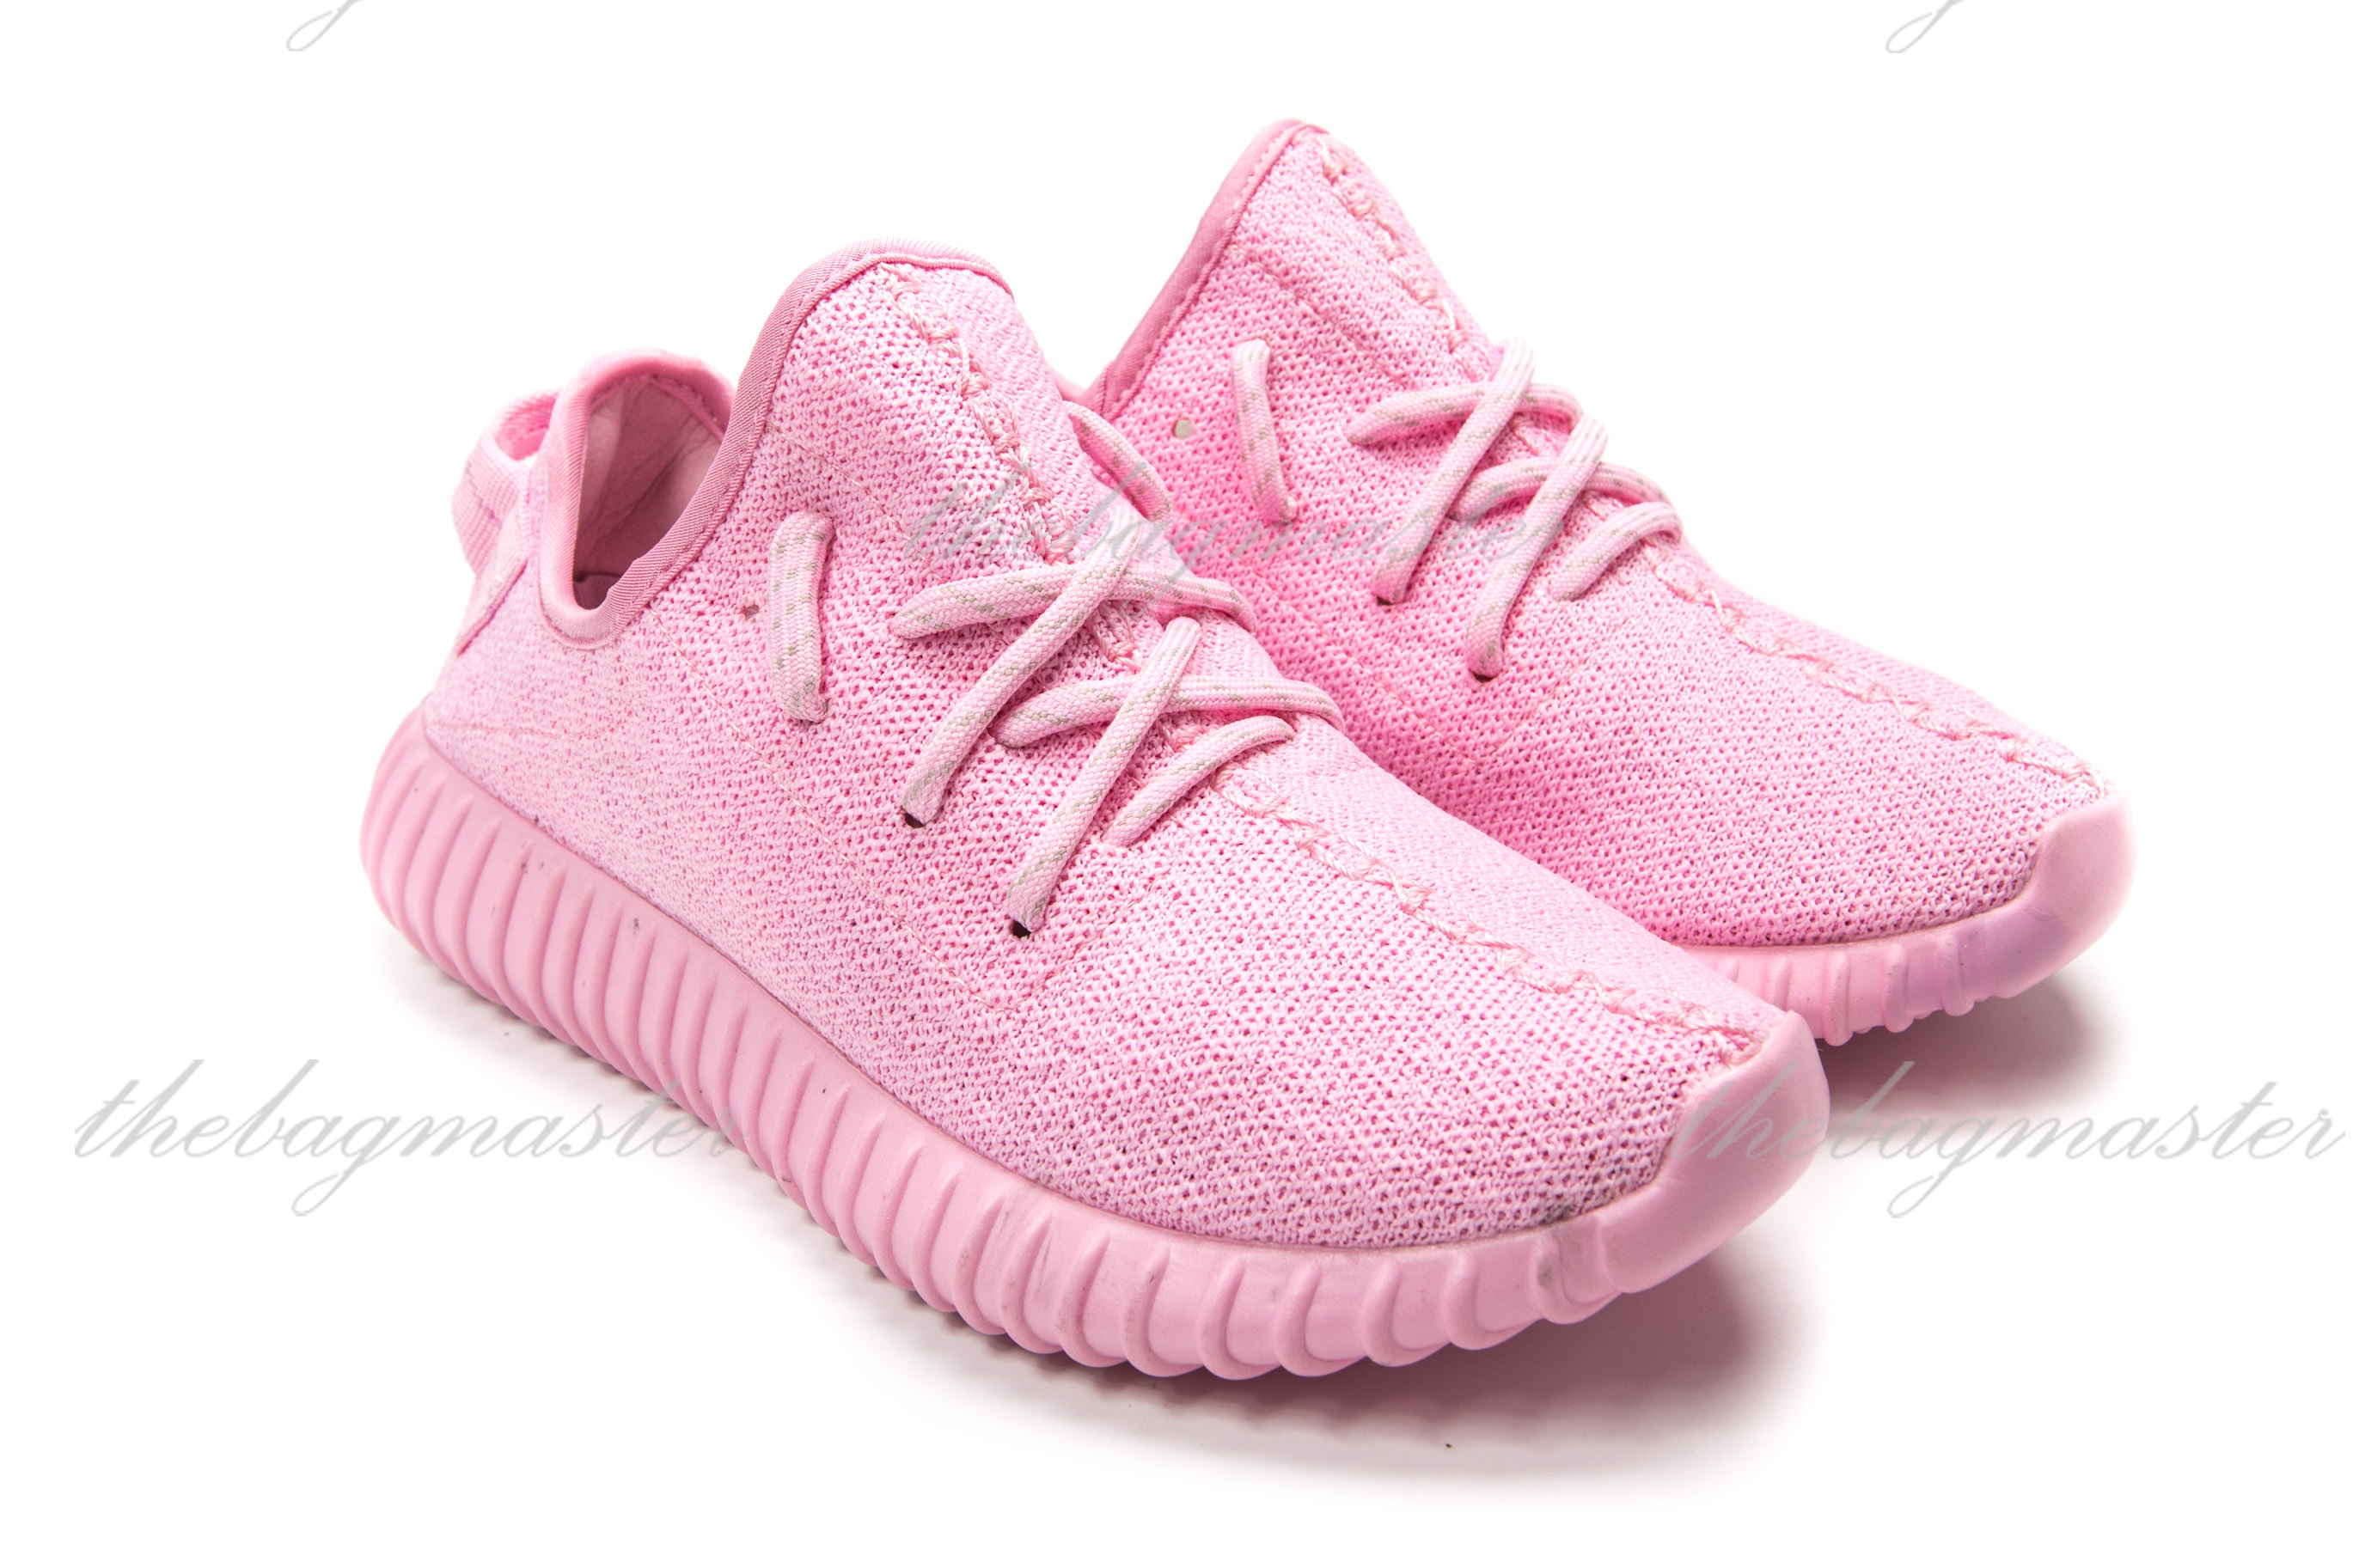 """2ee6fea59170 Adidas Yeezy 350 Boost """"Rose Gold"""" Concept Pink — The Lifestyle Store"""